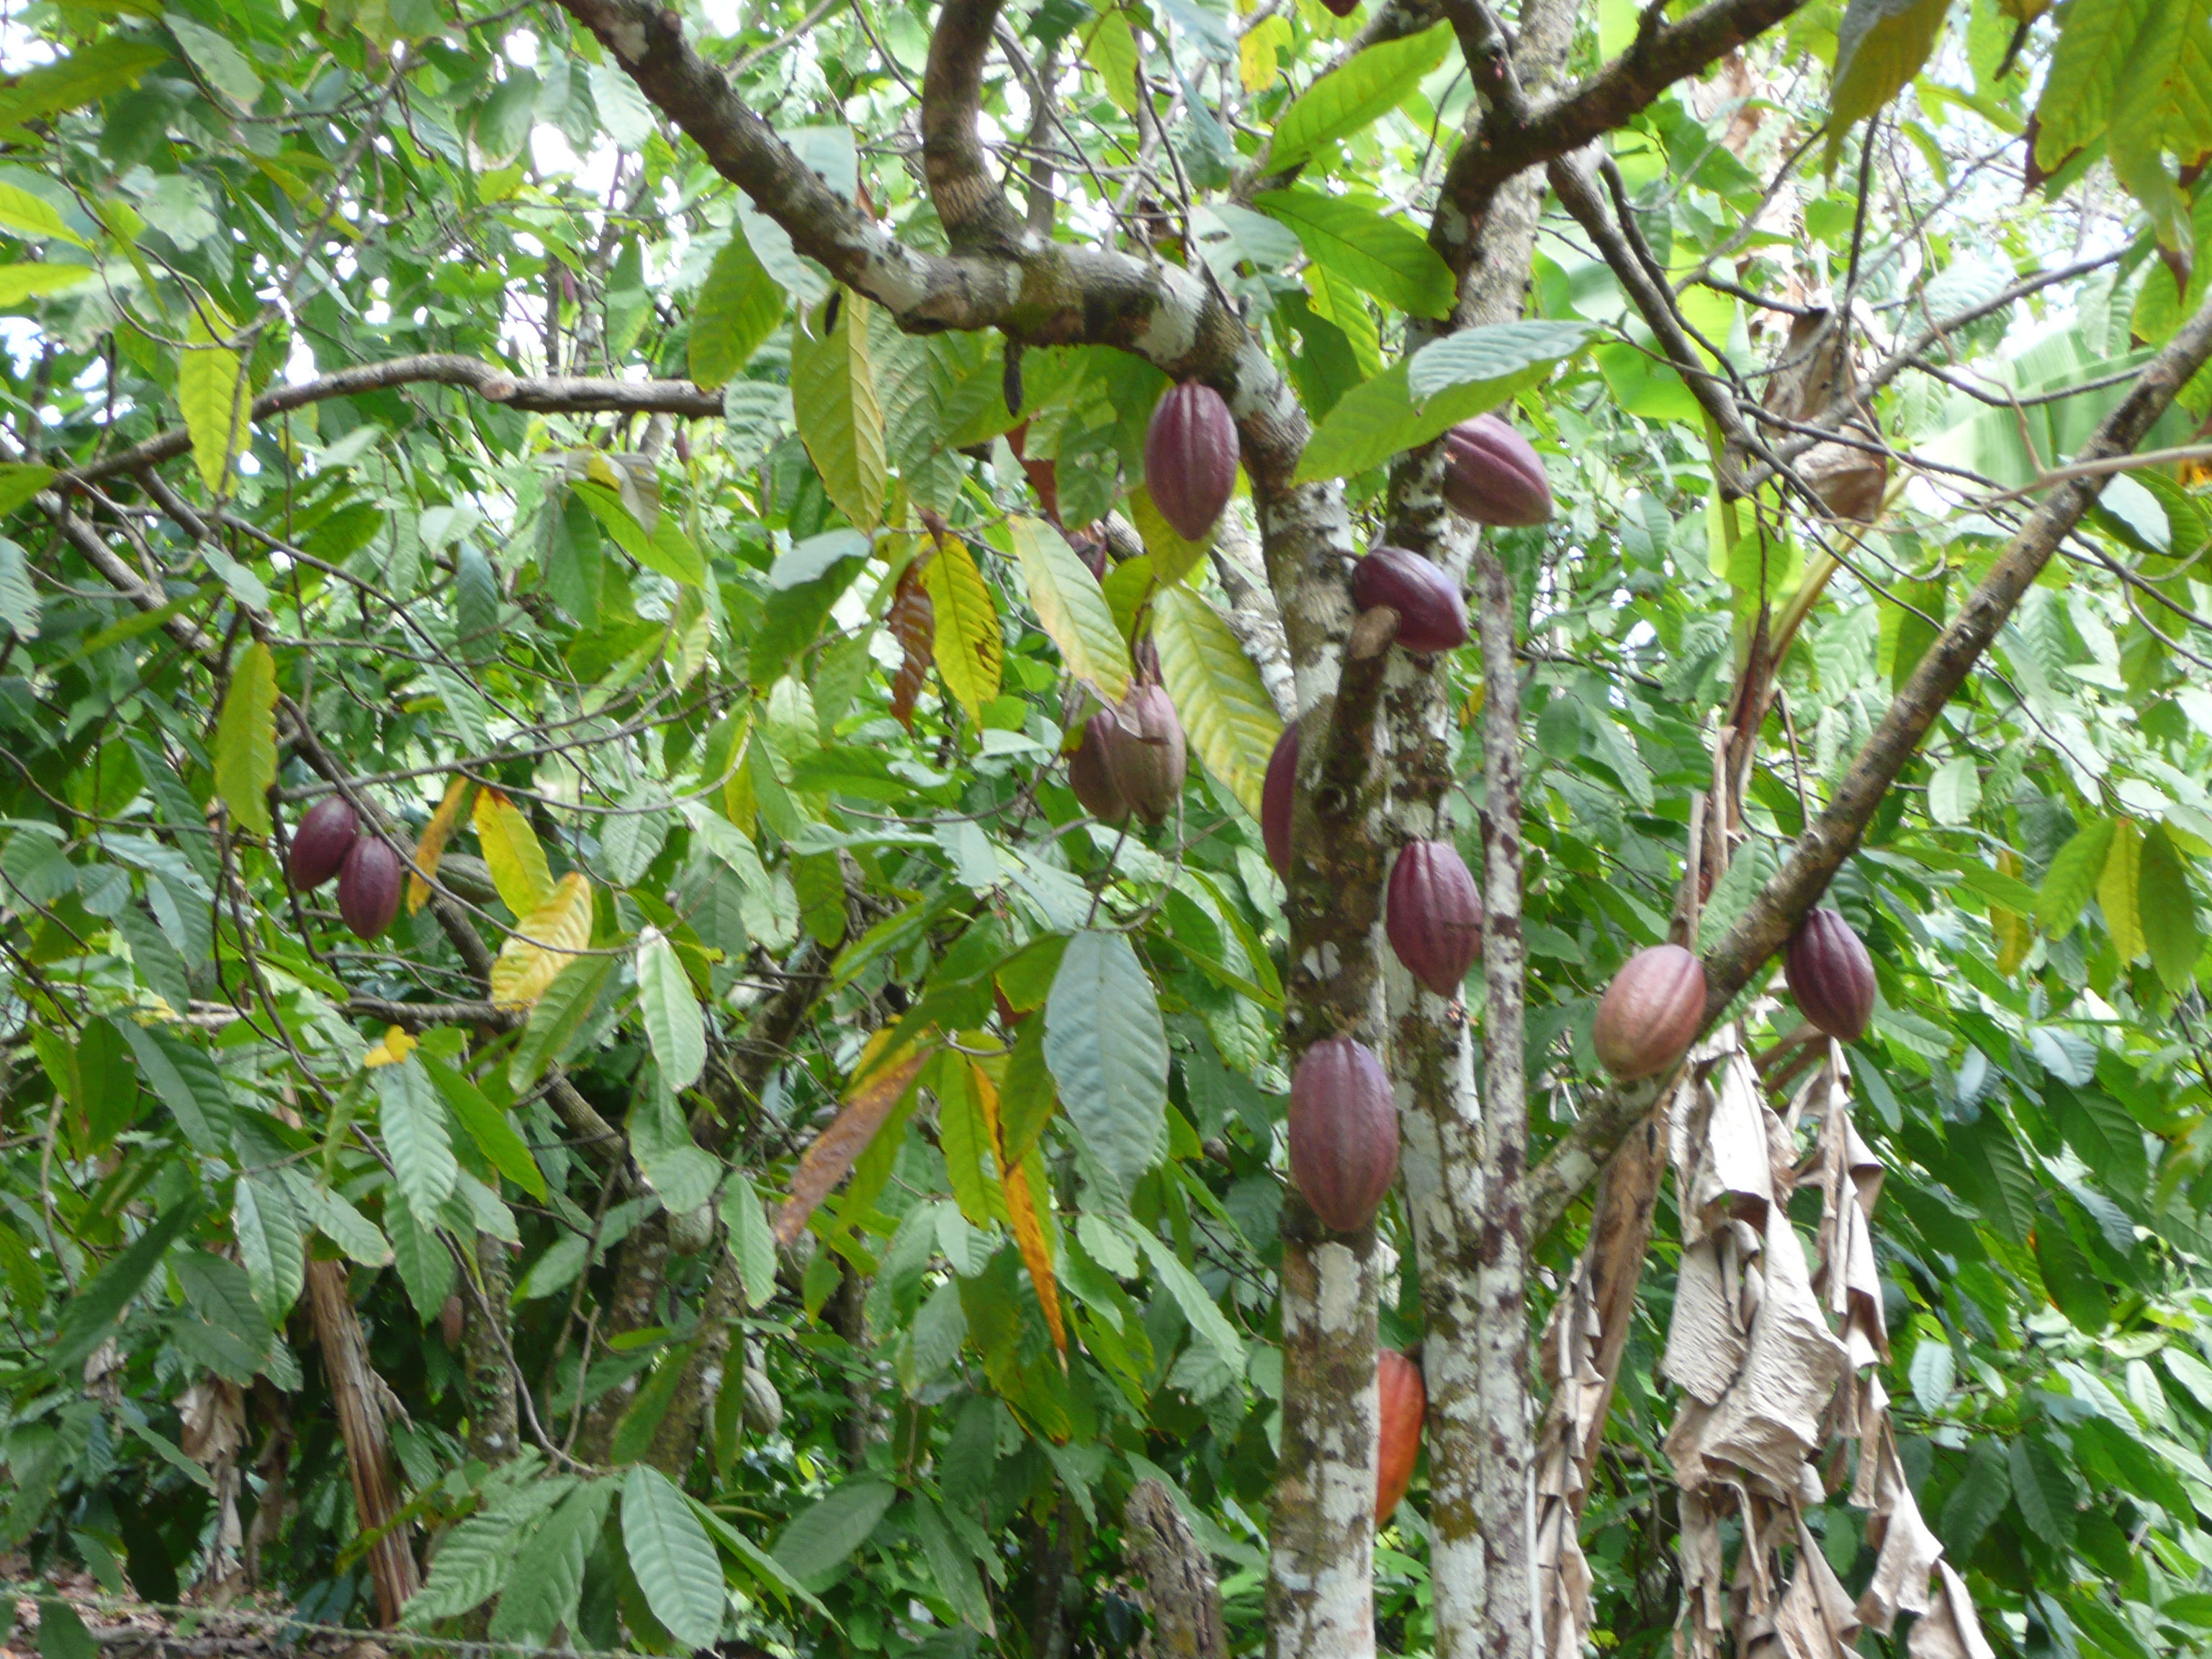 Dreaming of Seeing Cacao Tree